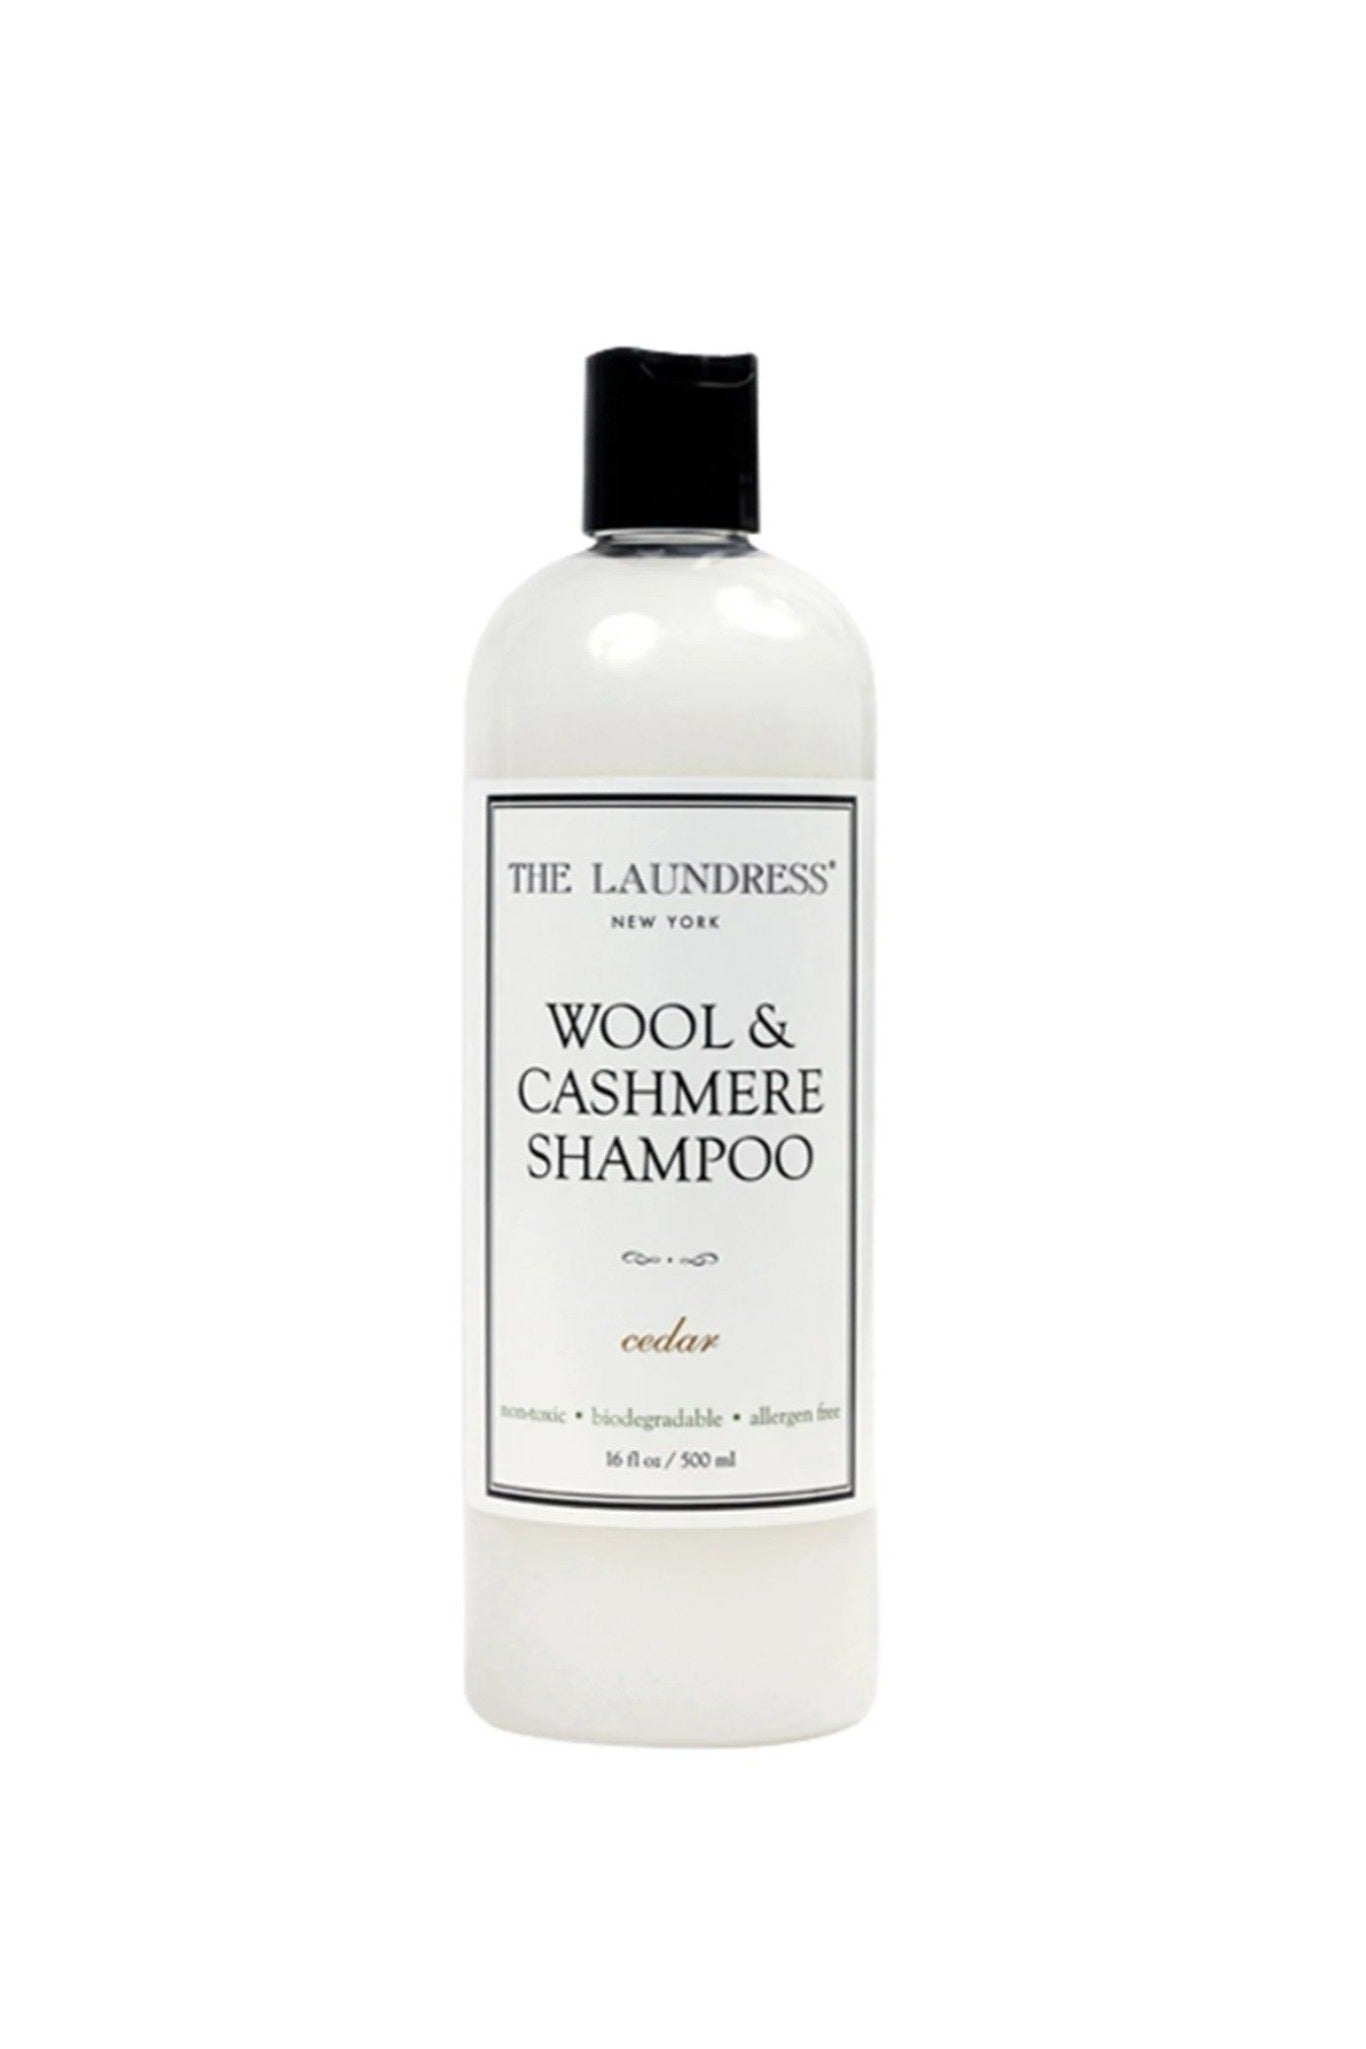 The Laundress Wool and Cashmere Detergent